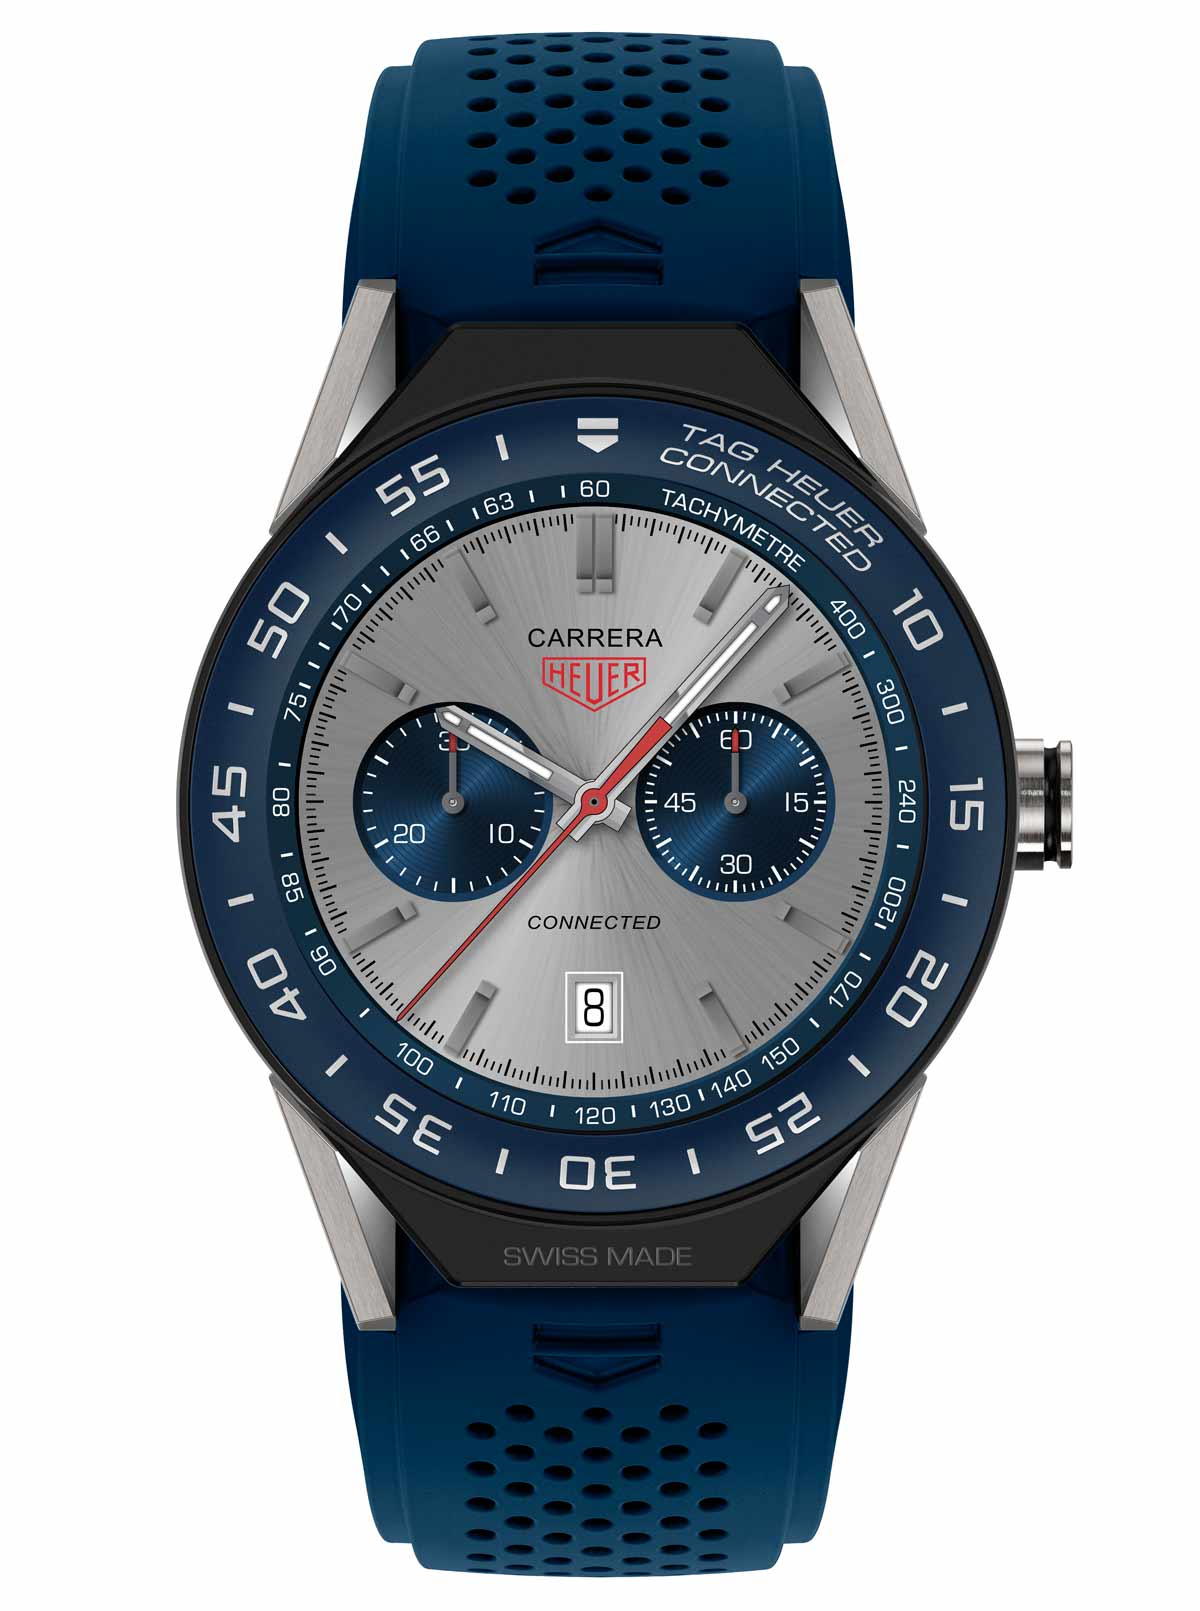 aux in seller ventes les connected business best tag selling heuer meilleures watches usa news industry de montres us the article